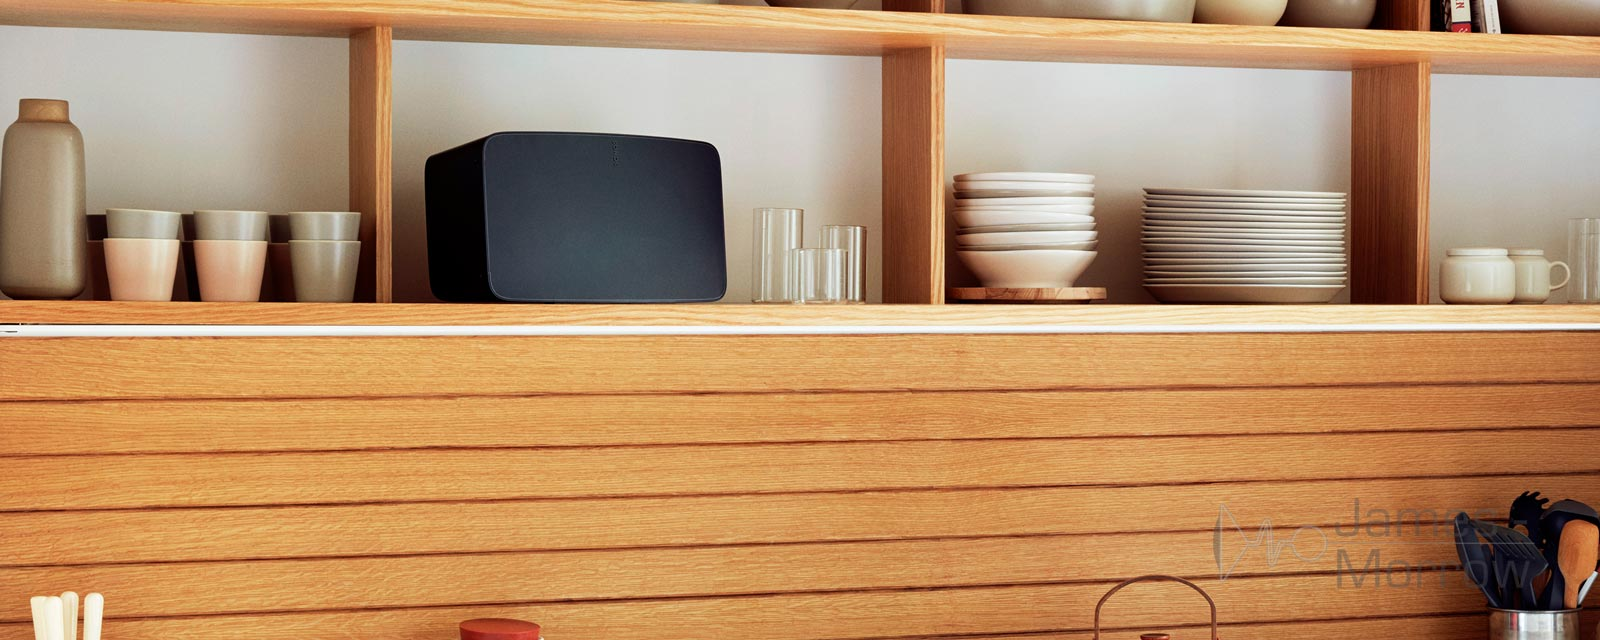 Sonos Five Black shelf lifestyle image banner